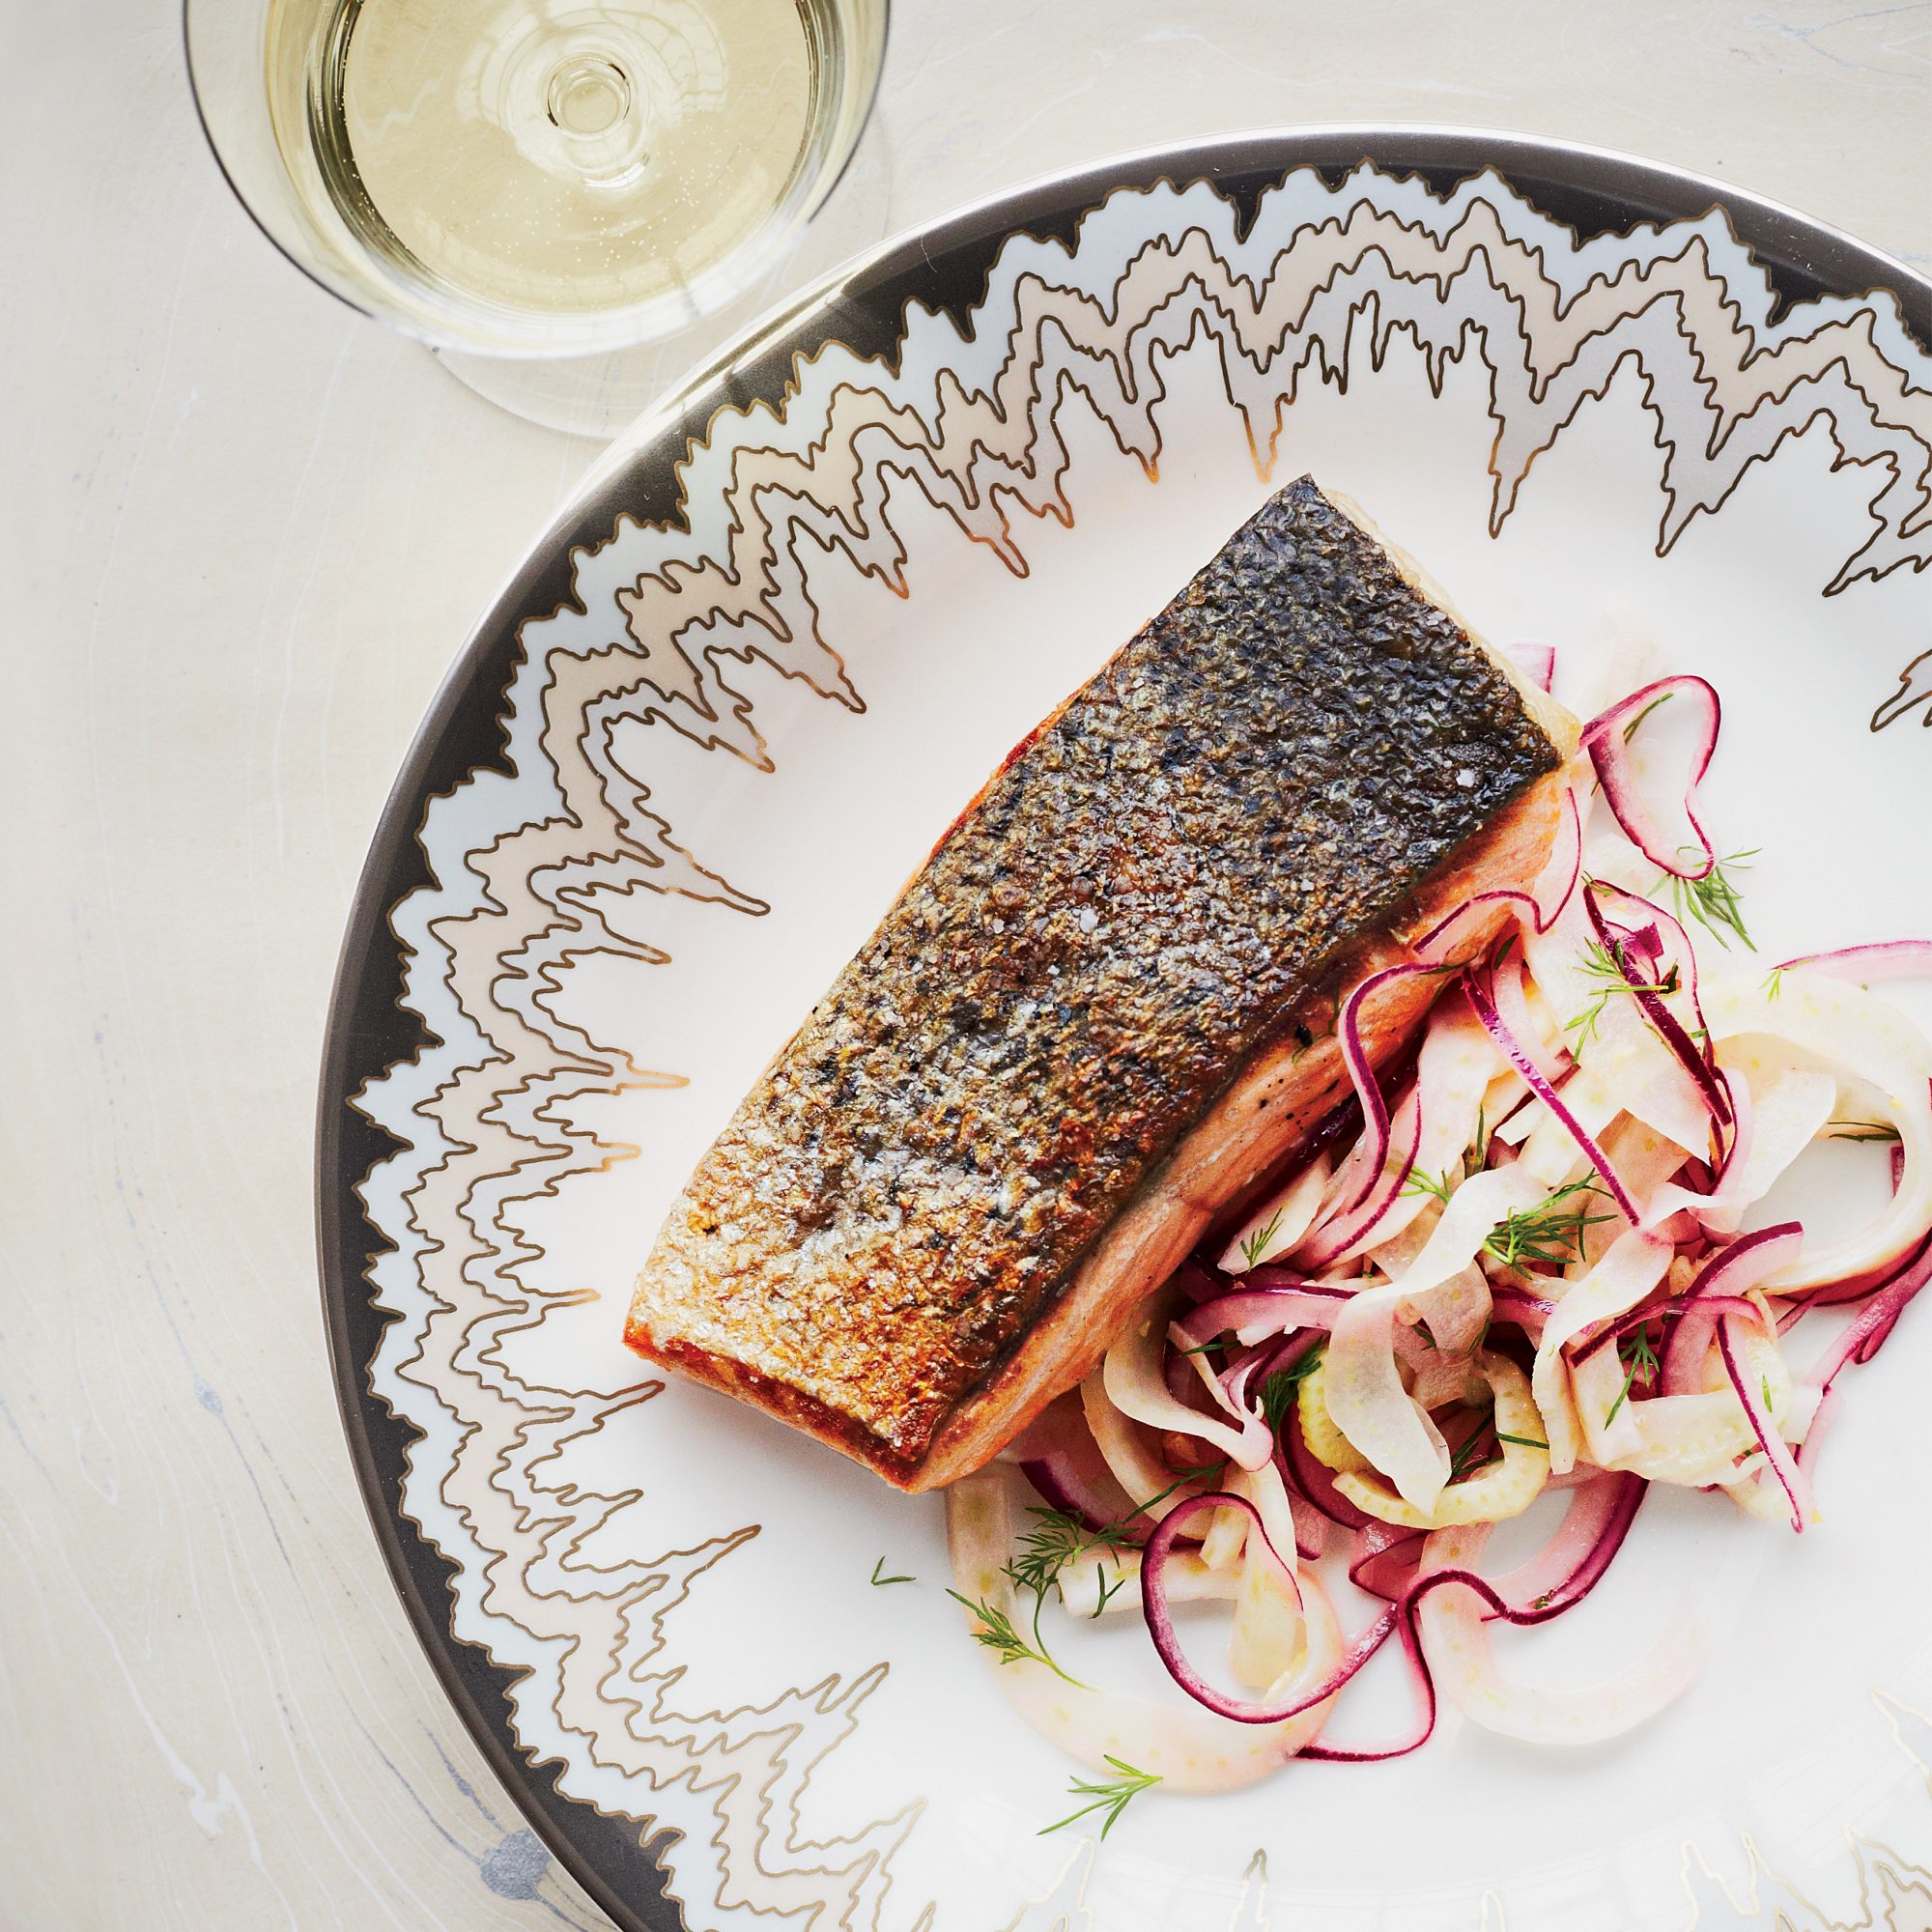 201404-r-crispy-salmon-with-fennel-slaw.jpg